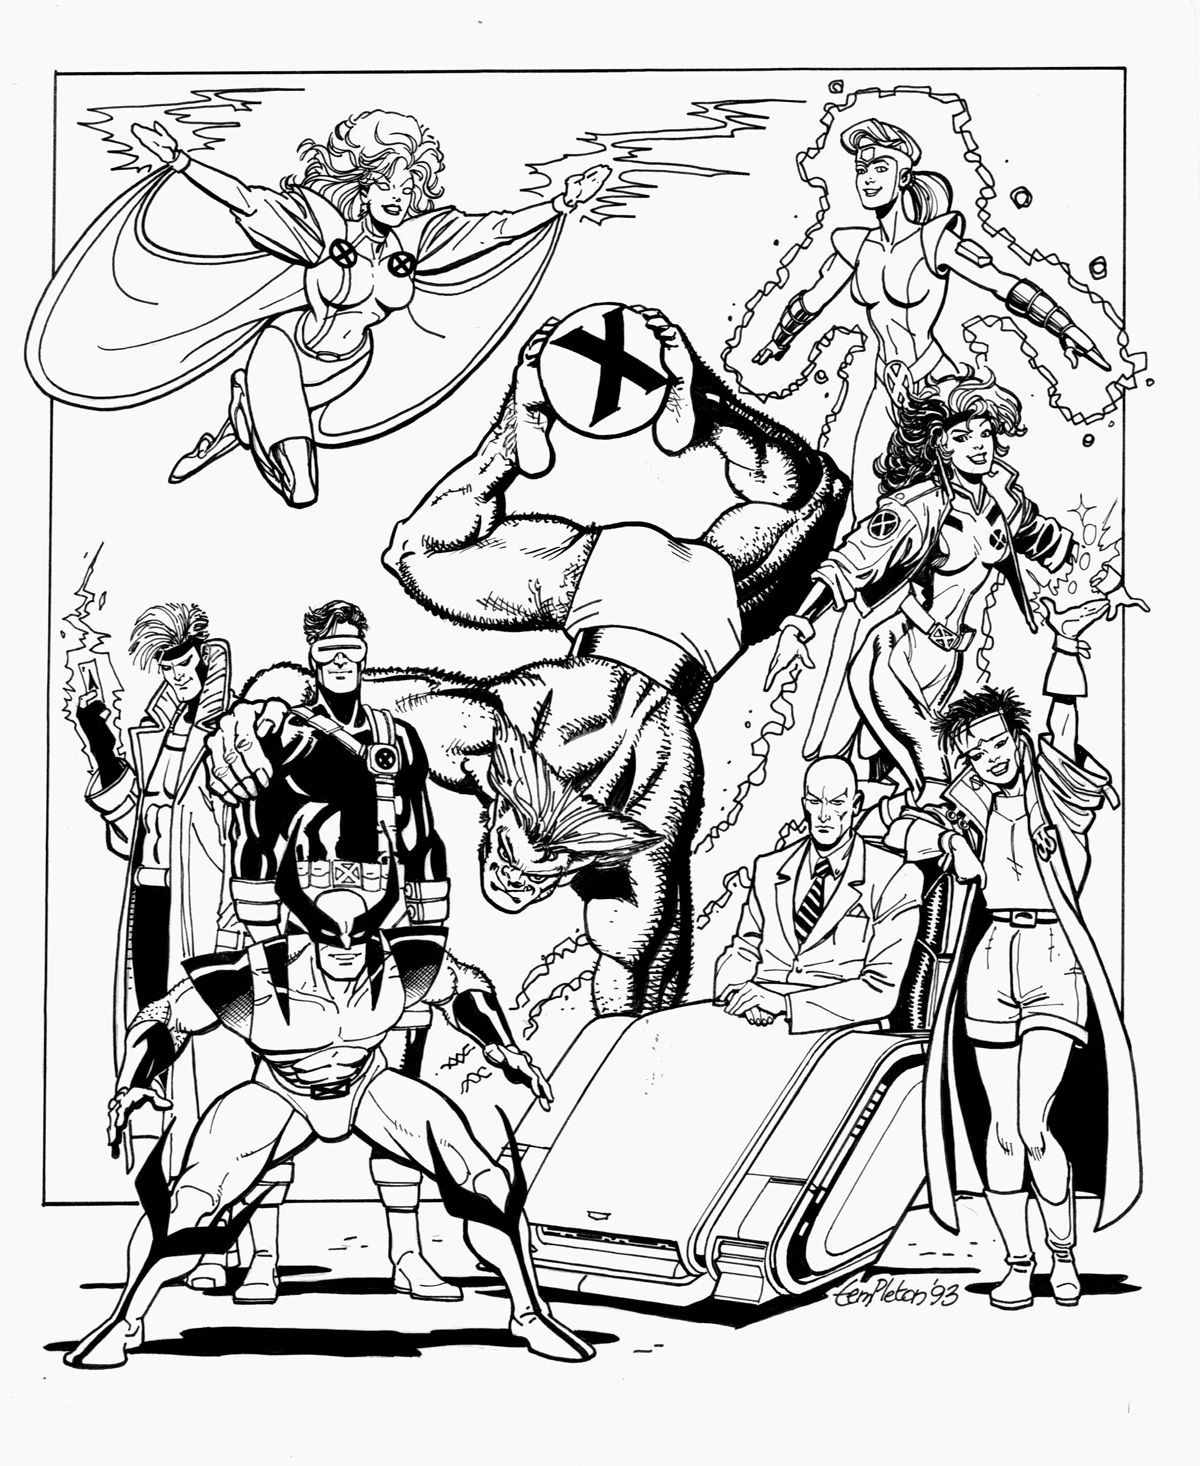 X Men Superheroes From The Gallery Books Superhero Coloring Pages Superhero Coloring Cartoon Coloring Pages